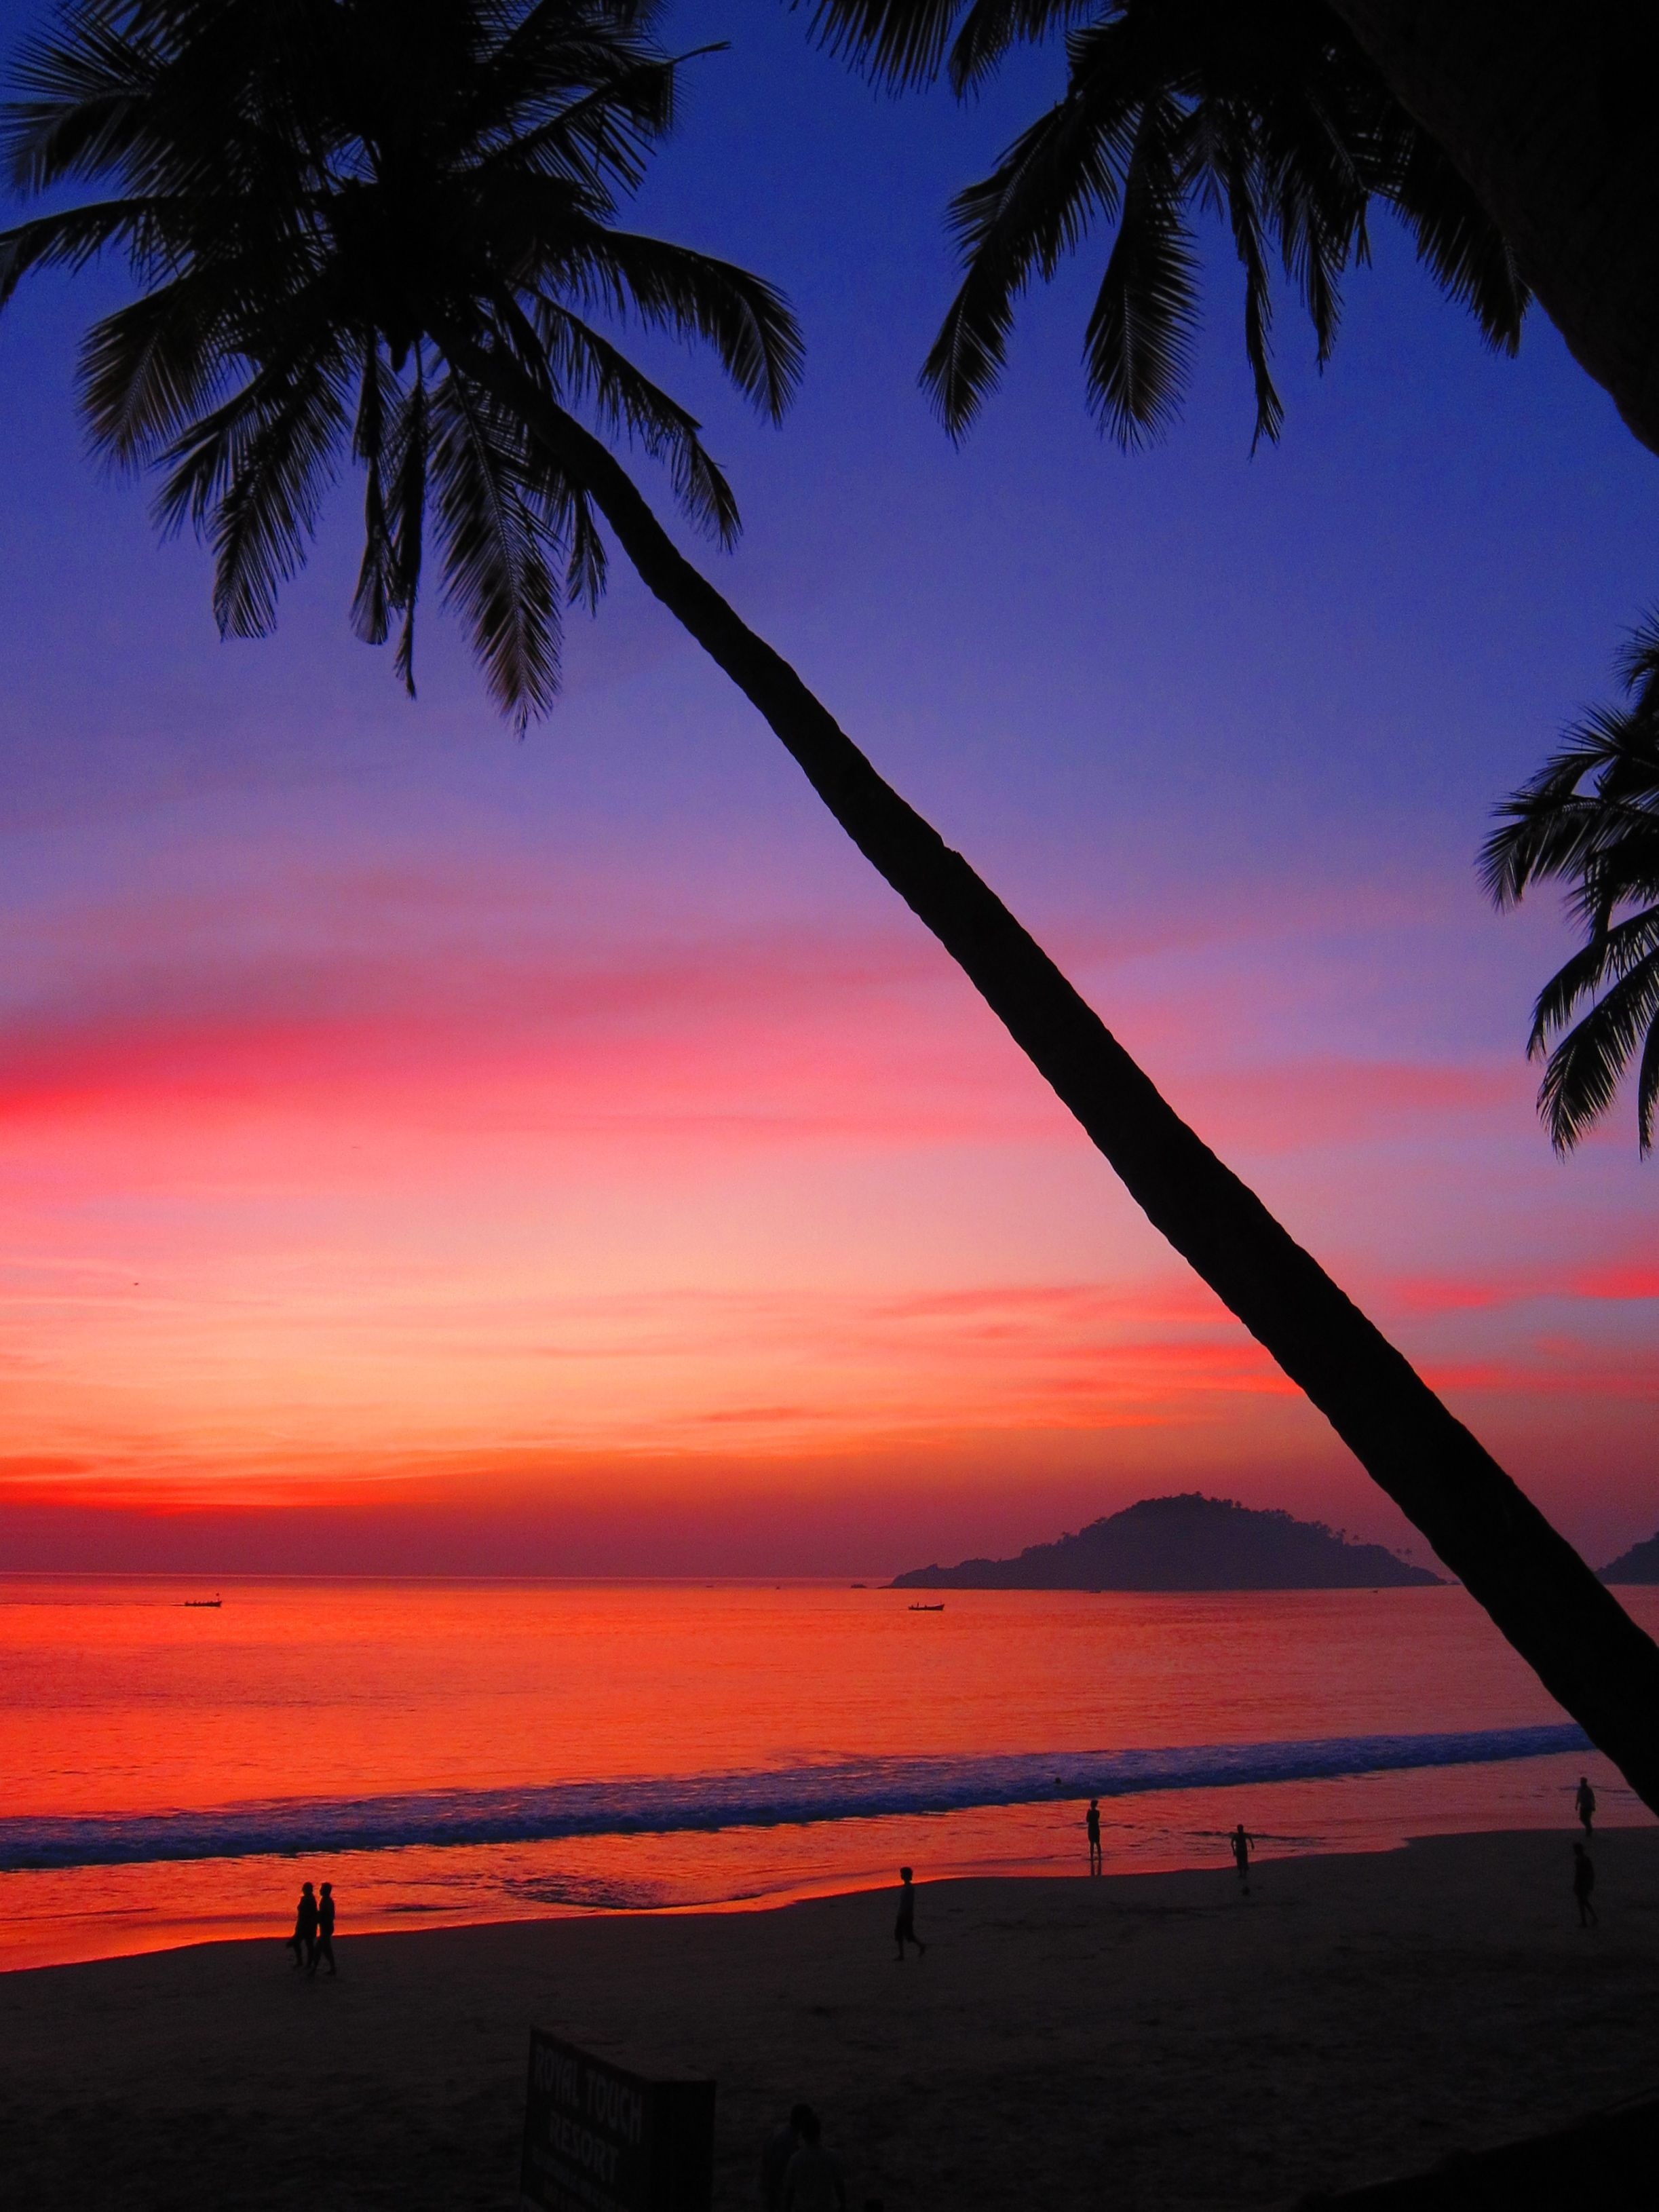 Amazing Sunset on the Beaches of Goa, India! http://planetandgo.com/my-first-week-backpacking-in-goa/ #amazingplaces #goaindia #worldtravel #backpackingindia #planetandgo #sunset #amazingbeaches #tropicalbeach